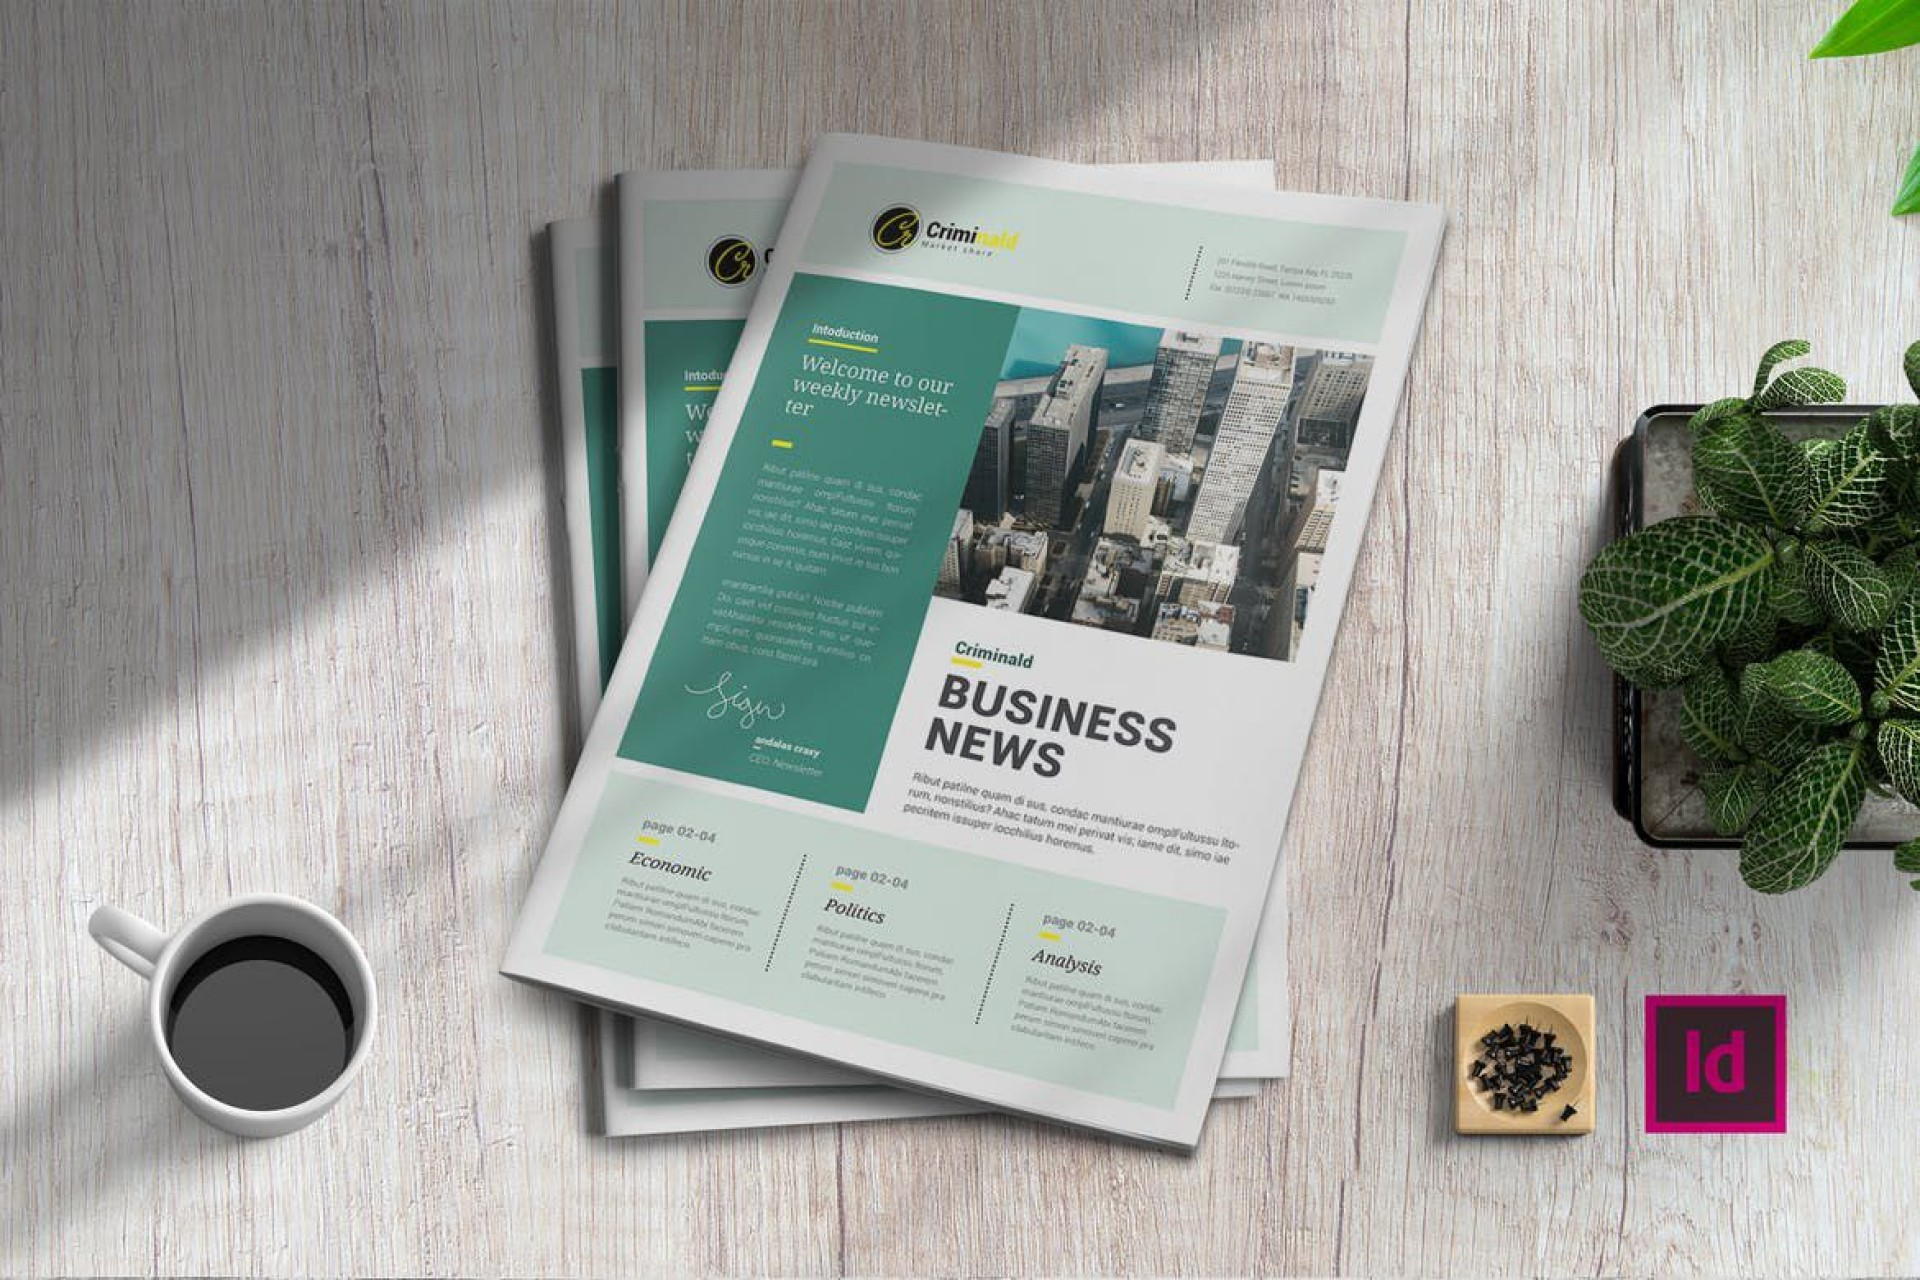 003 Unusual Adobe Indesign Newsletter Template Free Download High Resolution 1920